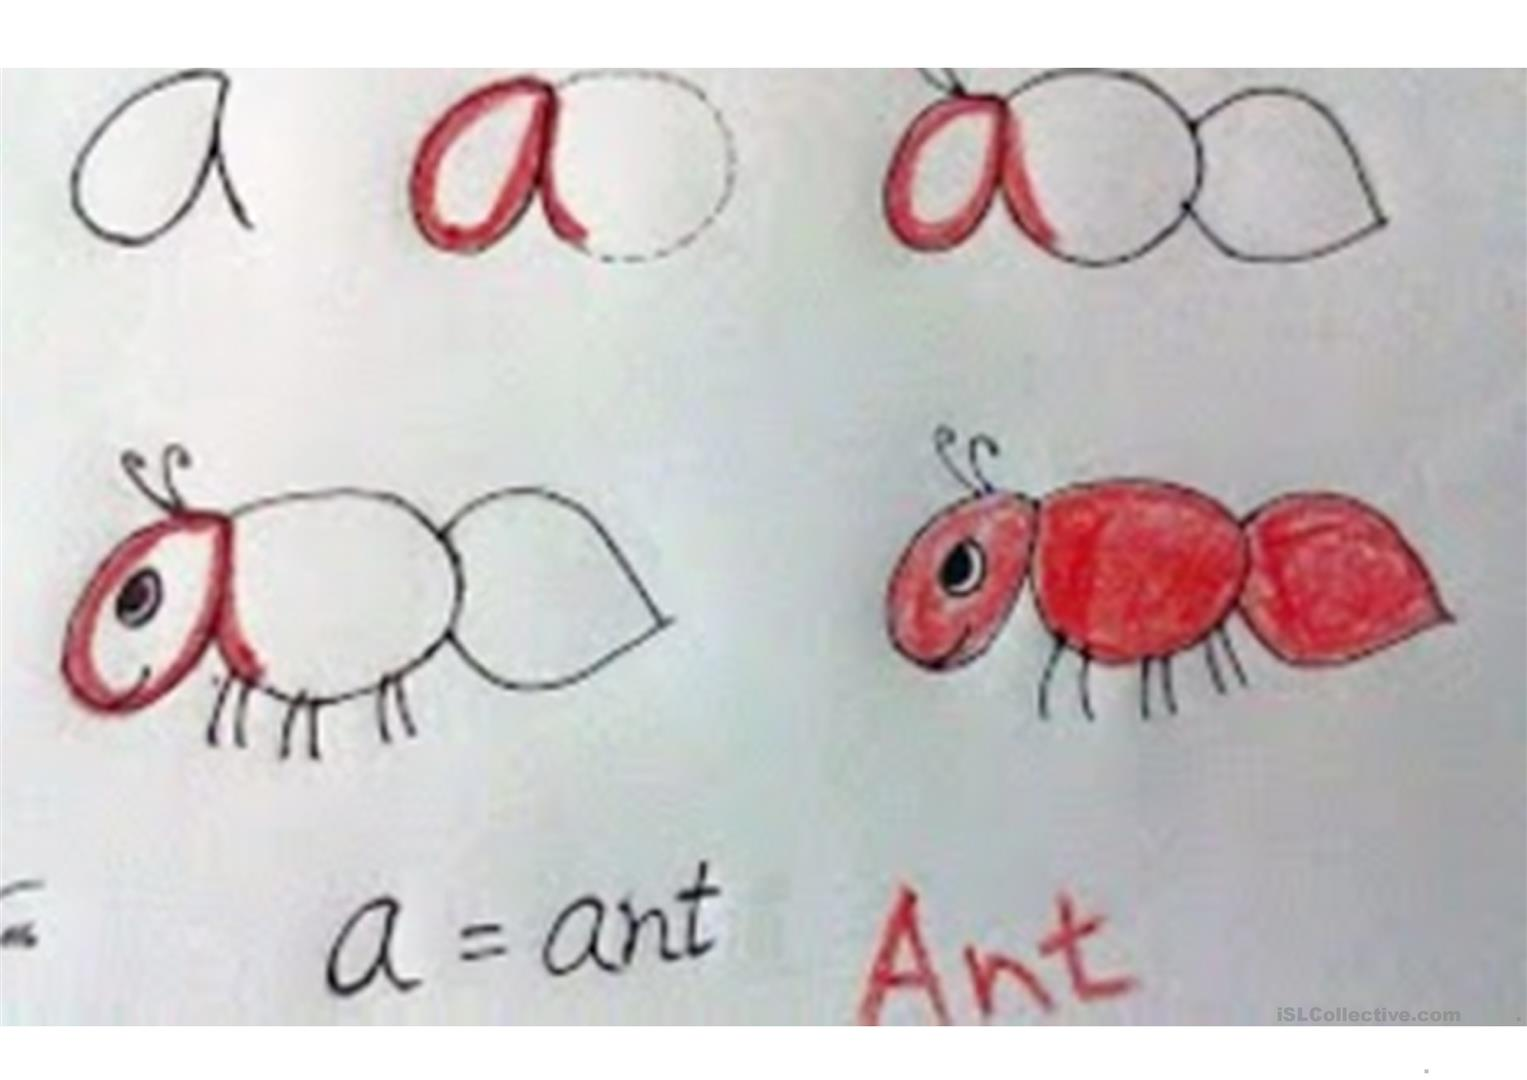 The Alphabet Drawing With The Letters